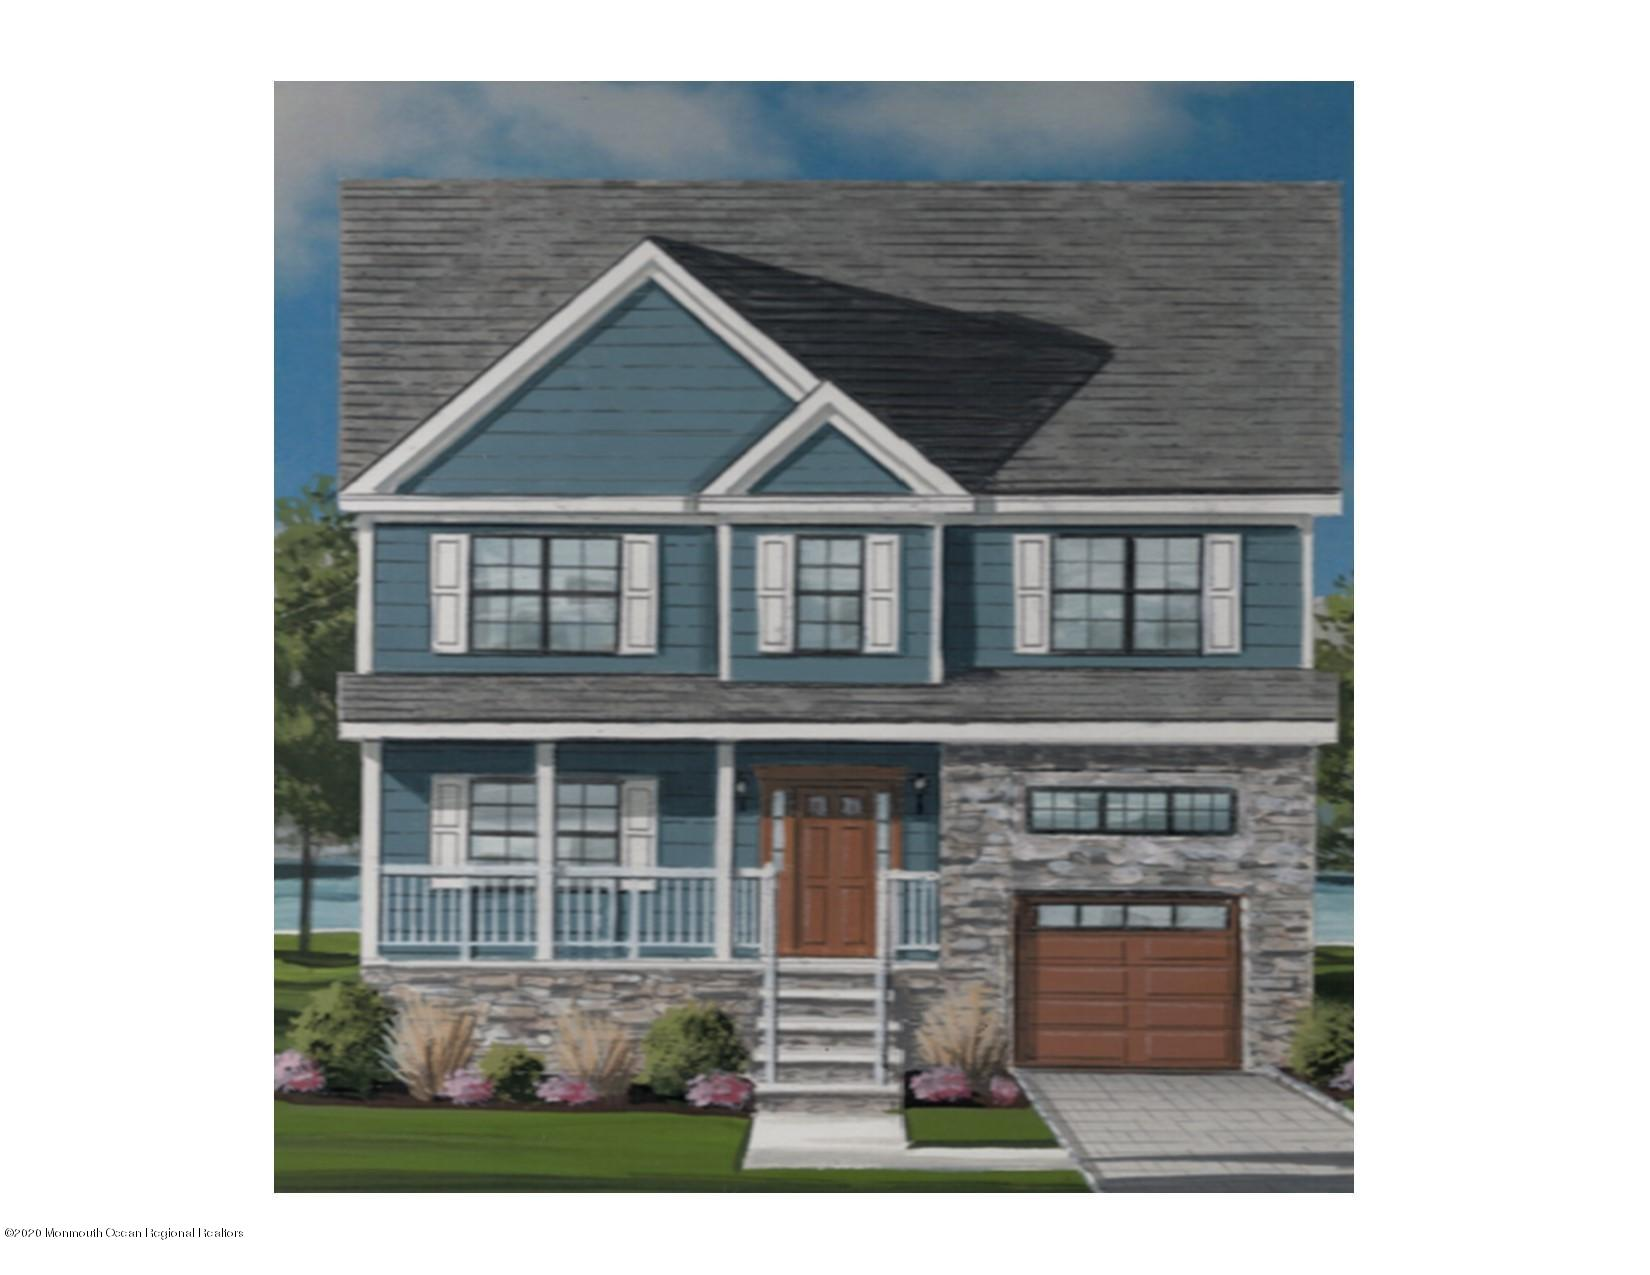 1838 Shore Boulevard, Point Pleasant, New Jersey 08742, 4 Bedrooms Bedrooms, ,3 BathroomsBathrooms,Single Family,For Sale,1838 Shore Boulevard,2.5,22017034